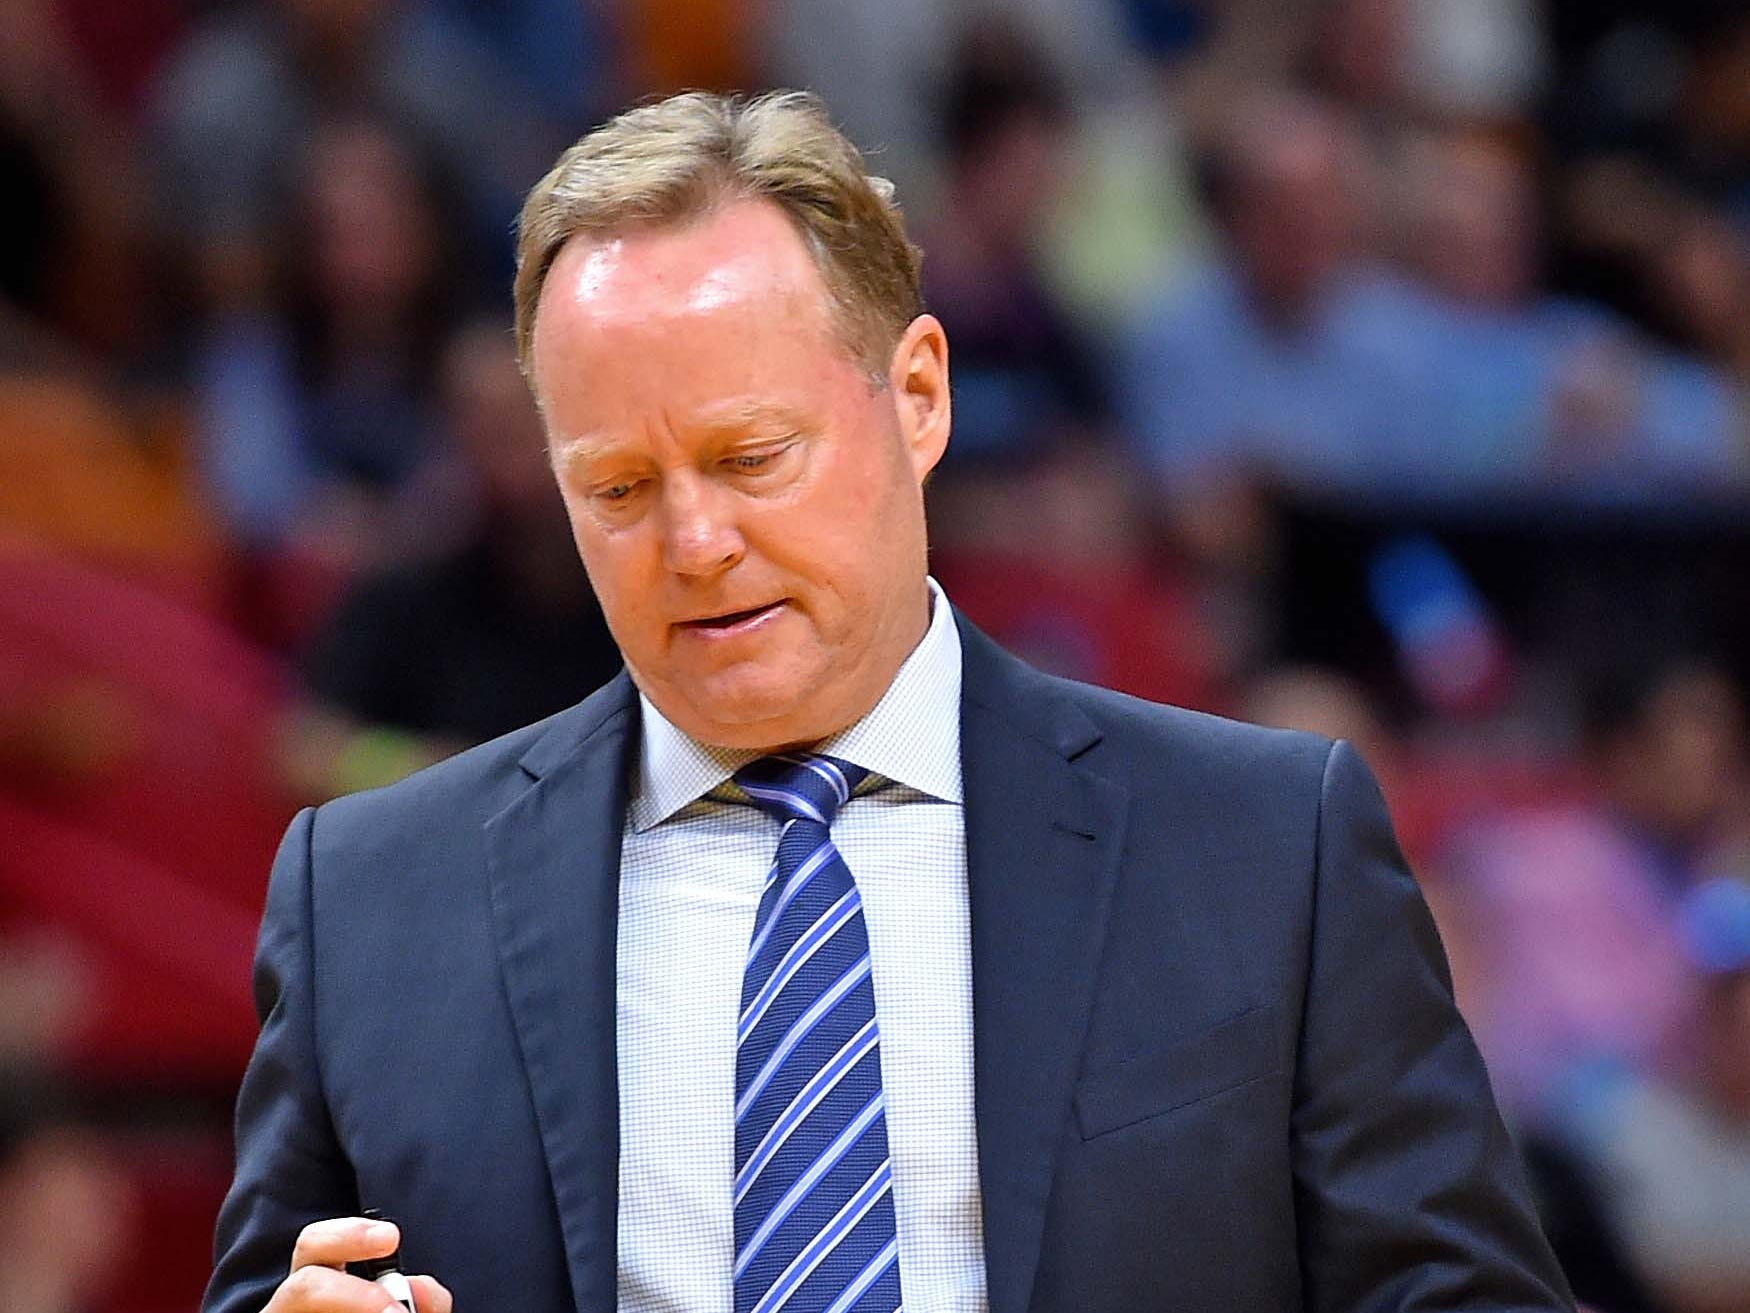 Milwaukee Bucks head coach Mike Budenholzer watched his team struggle in the first half.